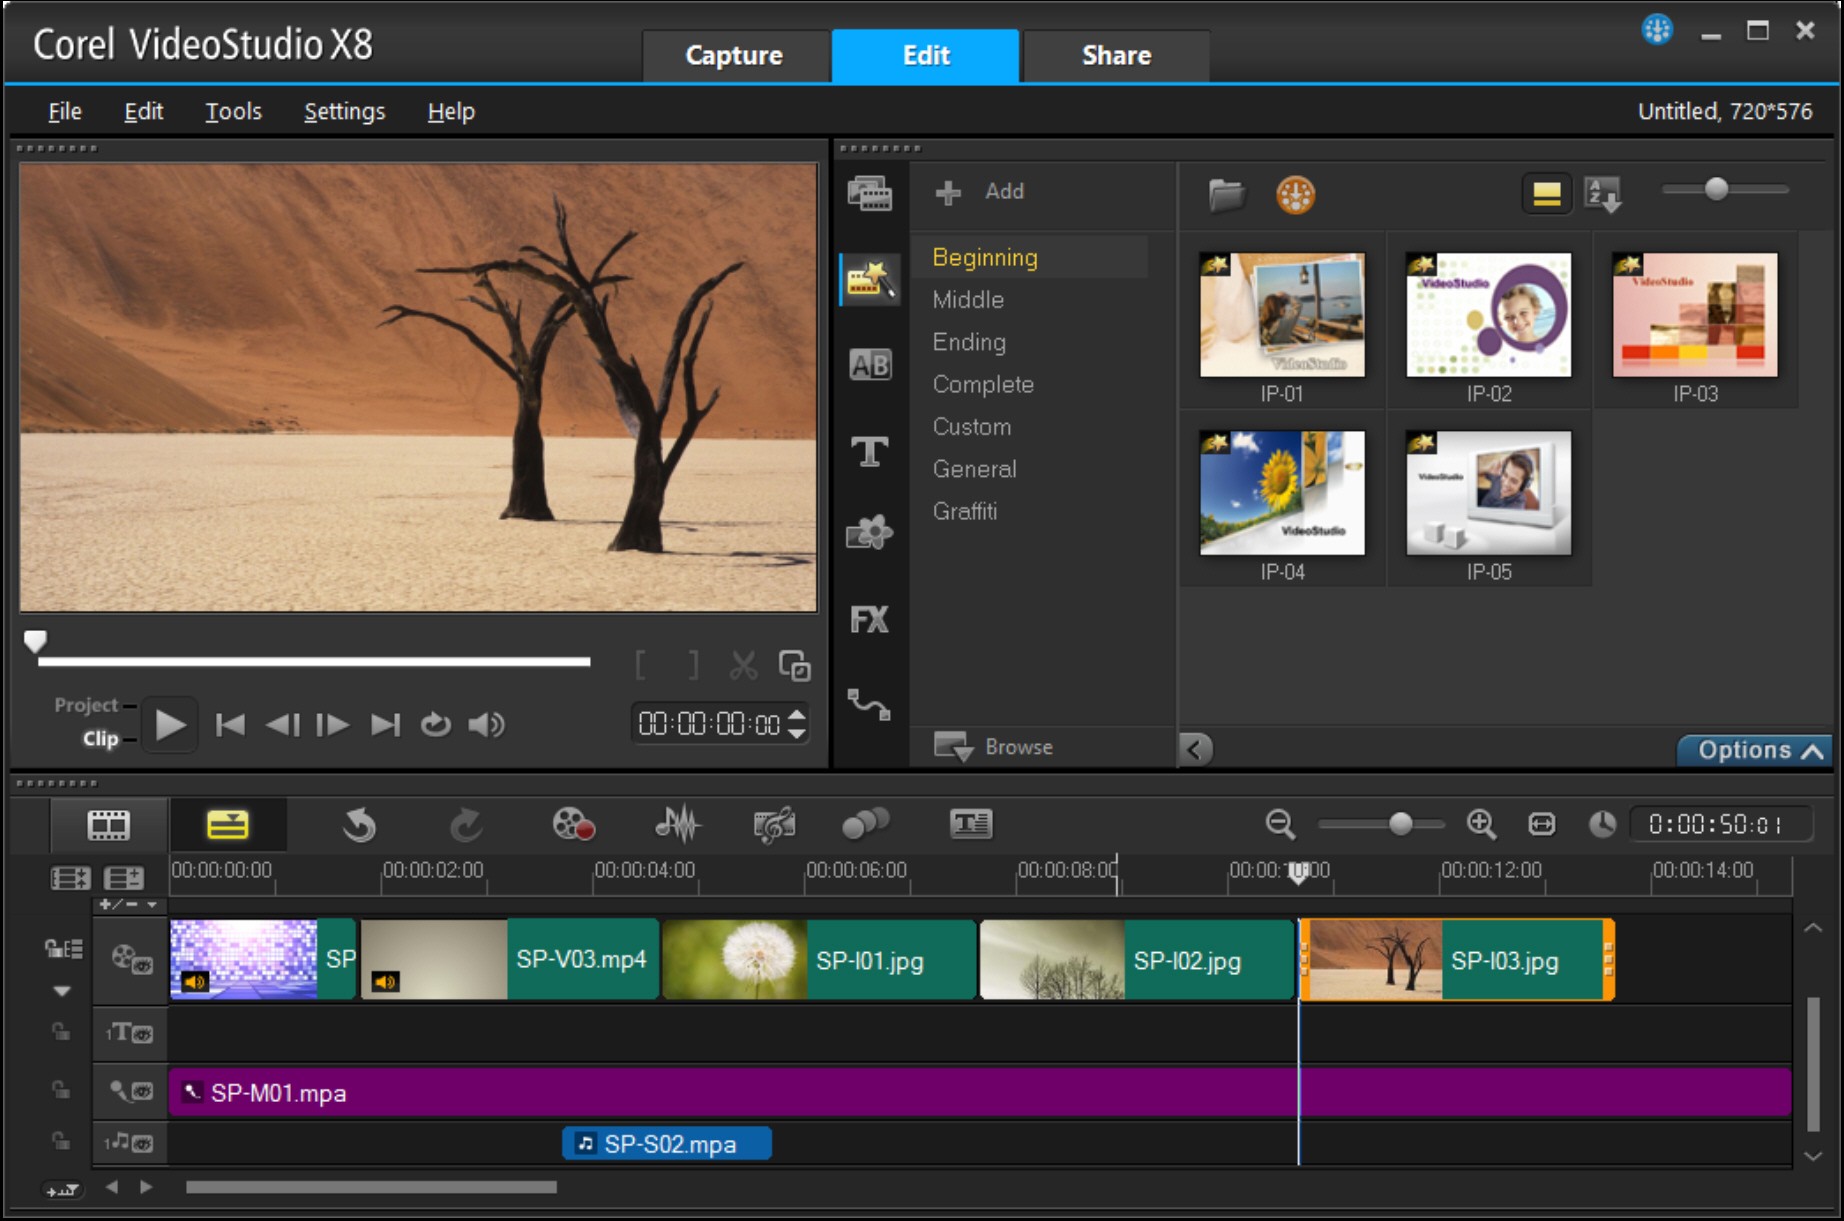 Corel videostudio ultimate x8 full 18 6 0 6 indir full for Corel video studio templates download